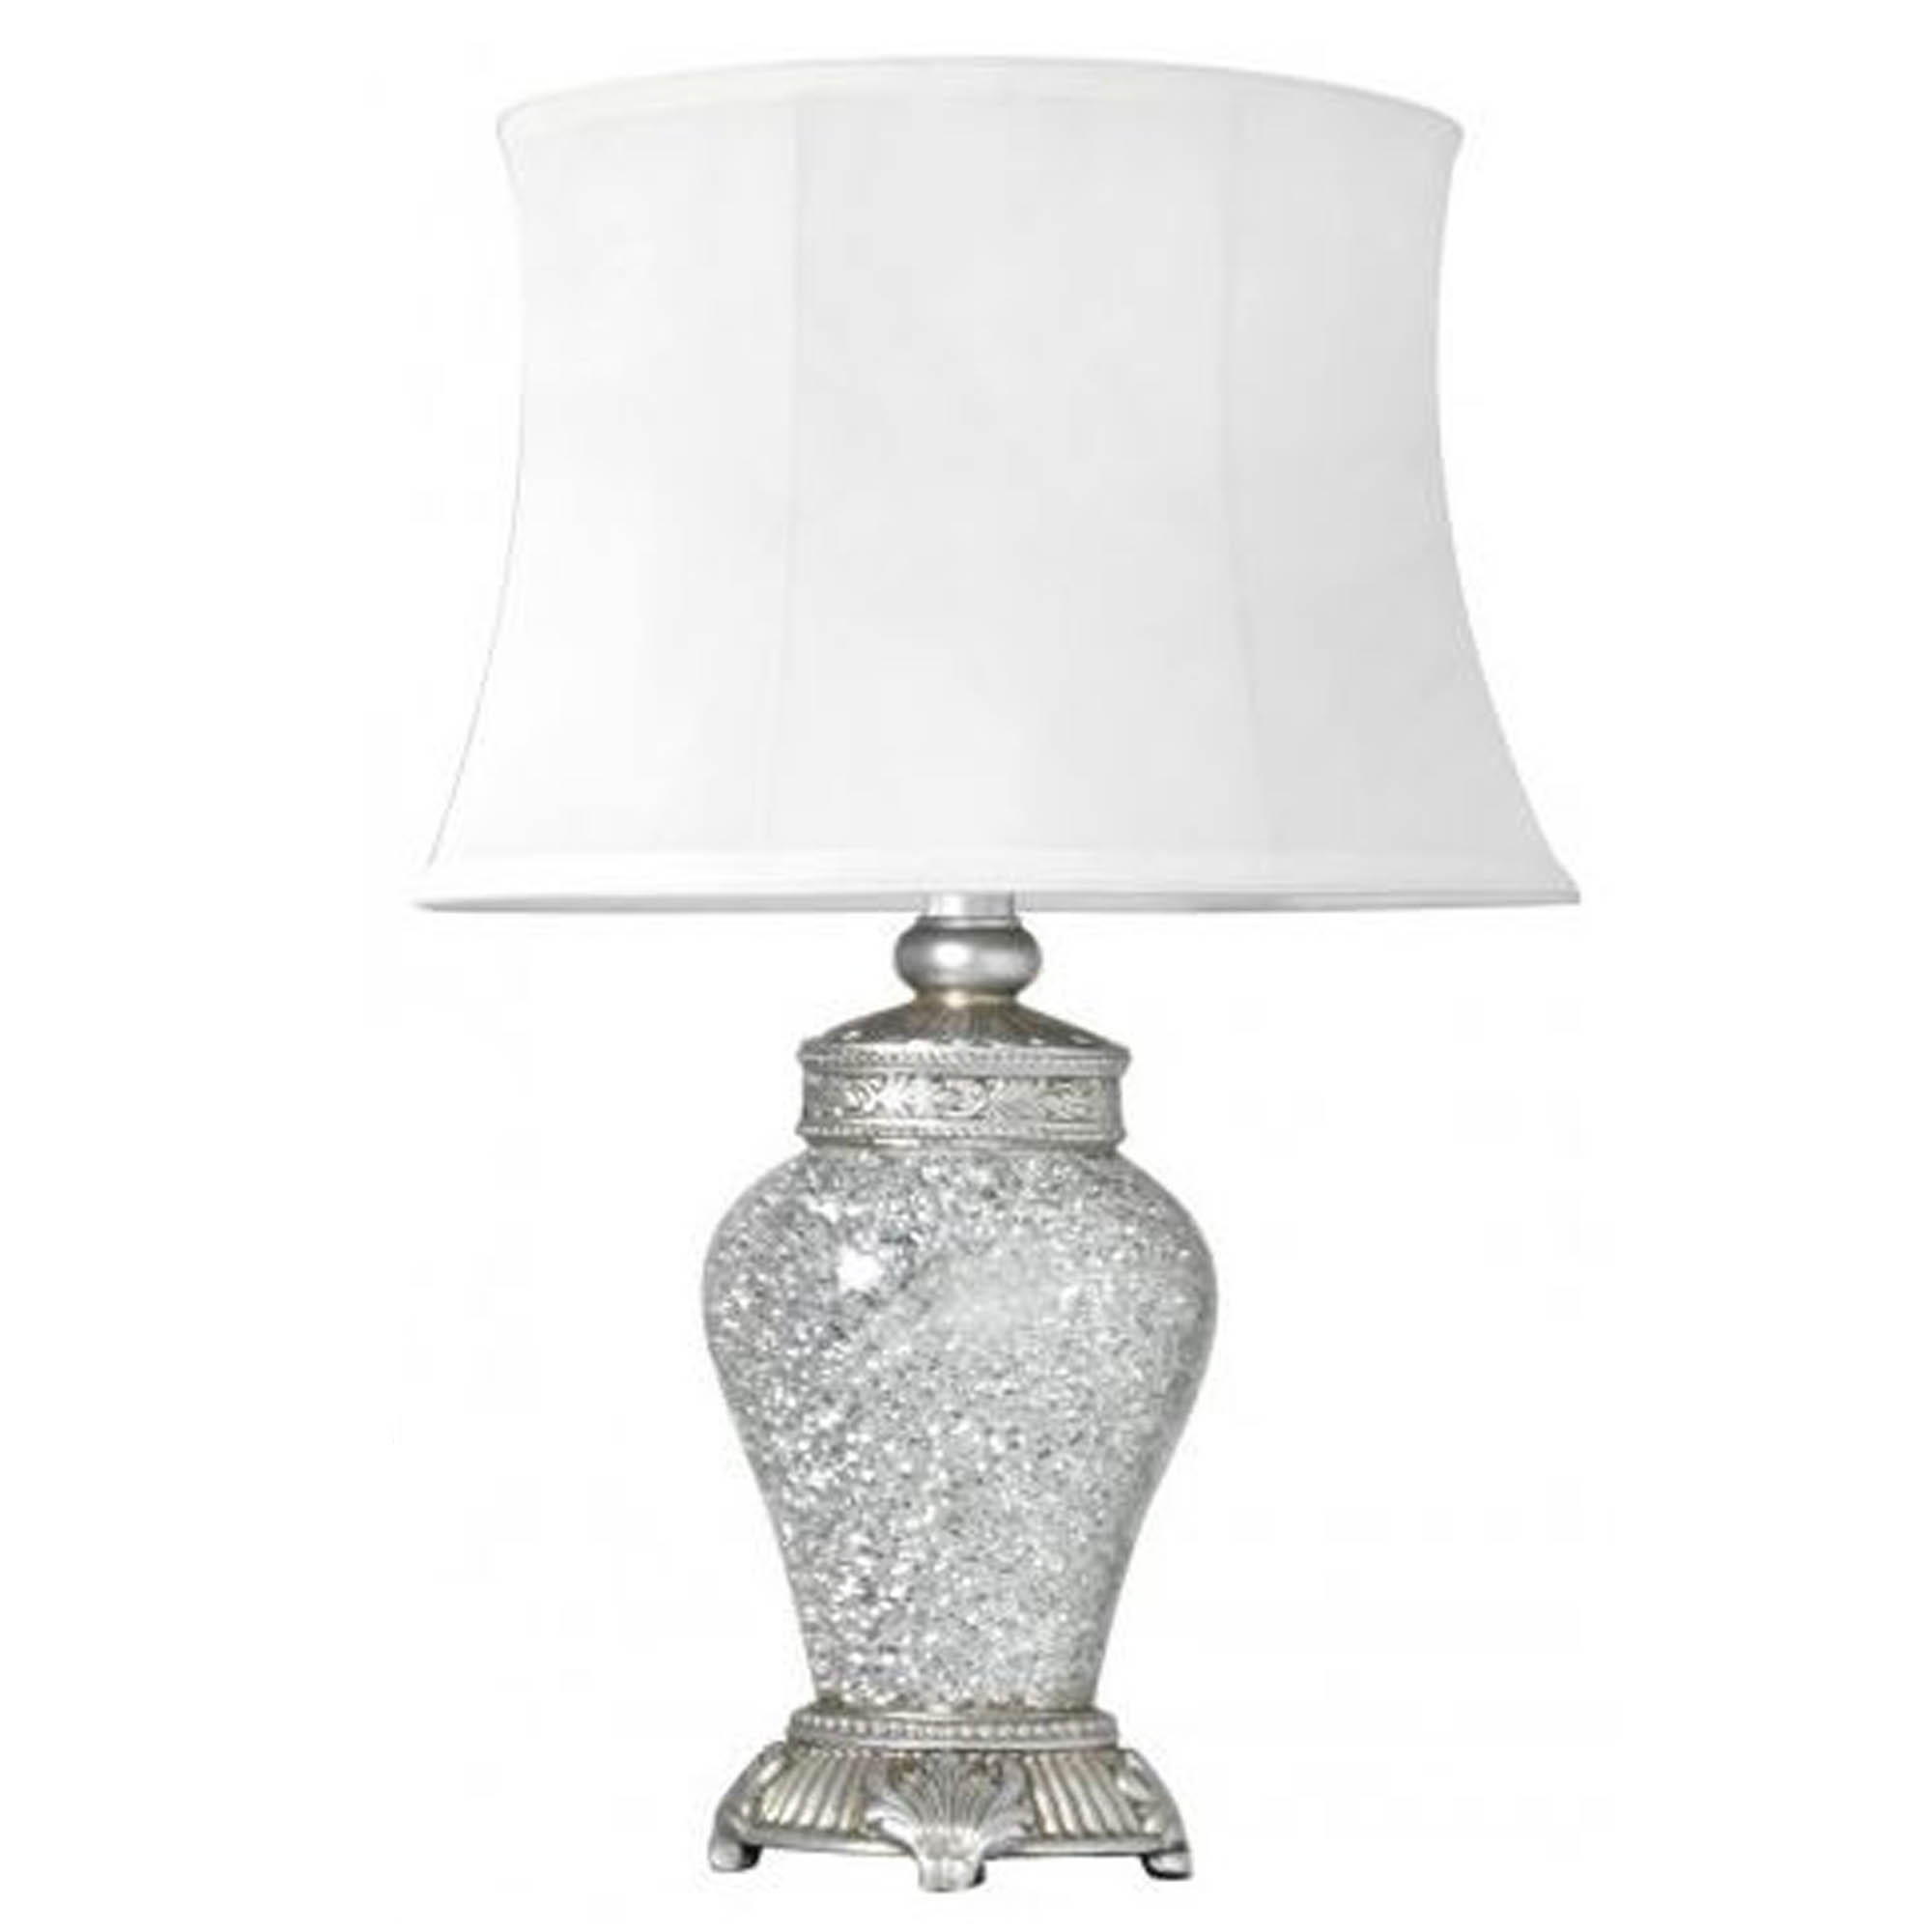 Antique French Style Silver Mosaic Table Lamp Lamp Homesdirect365